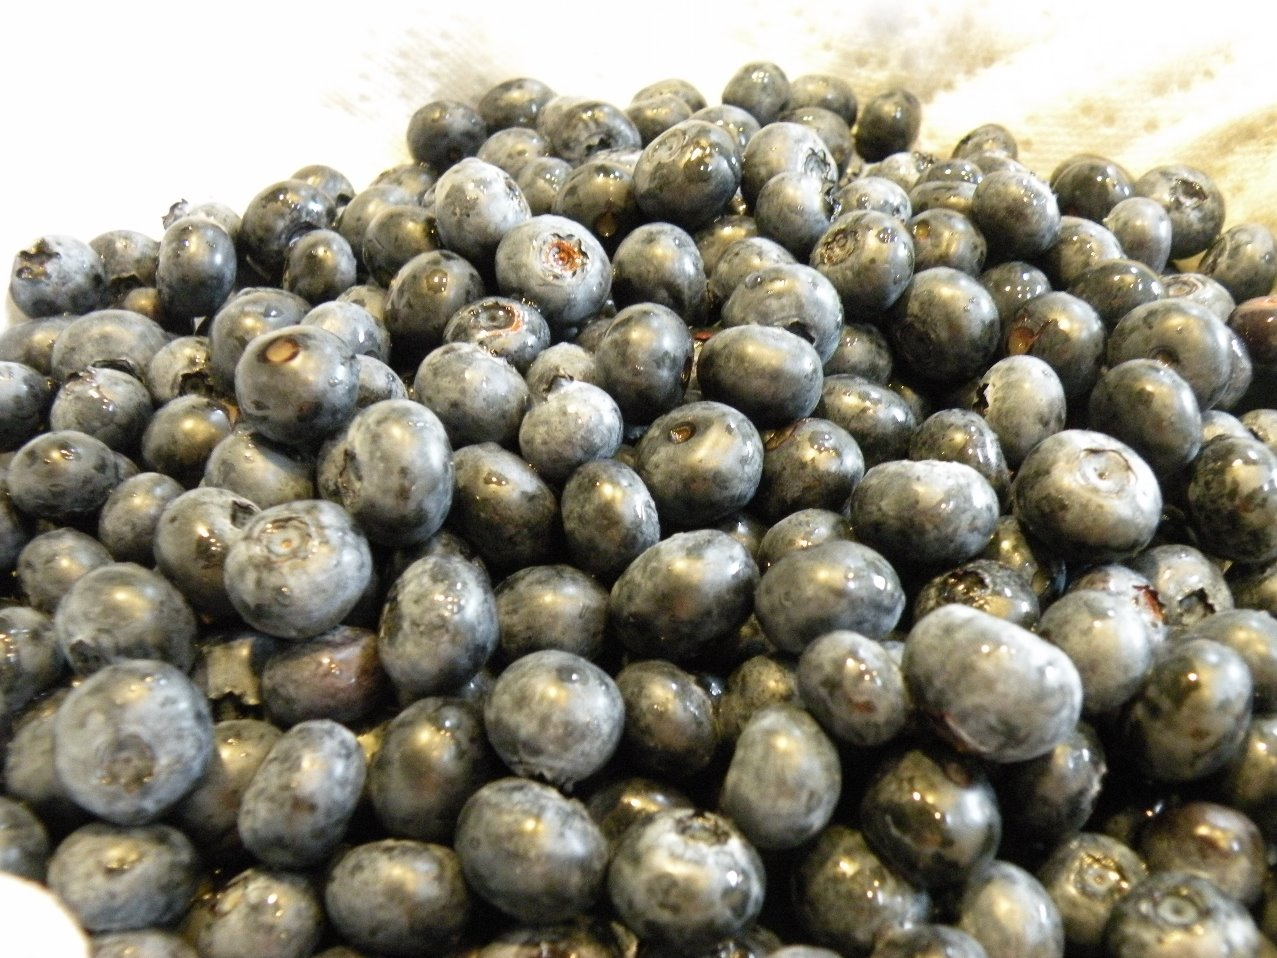 bunch of picked blueberries